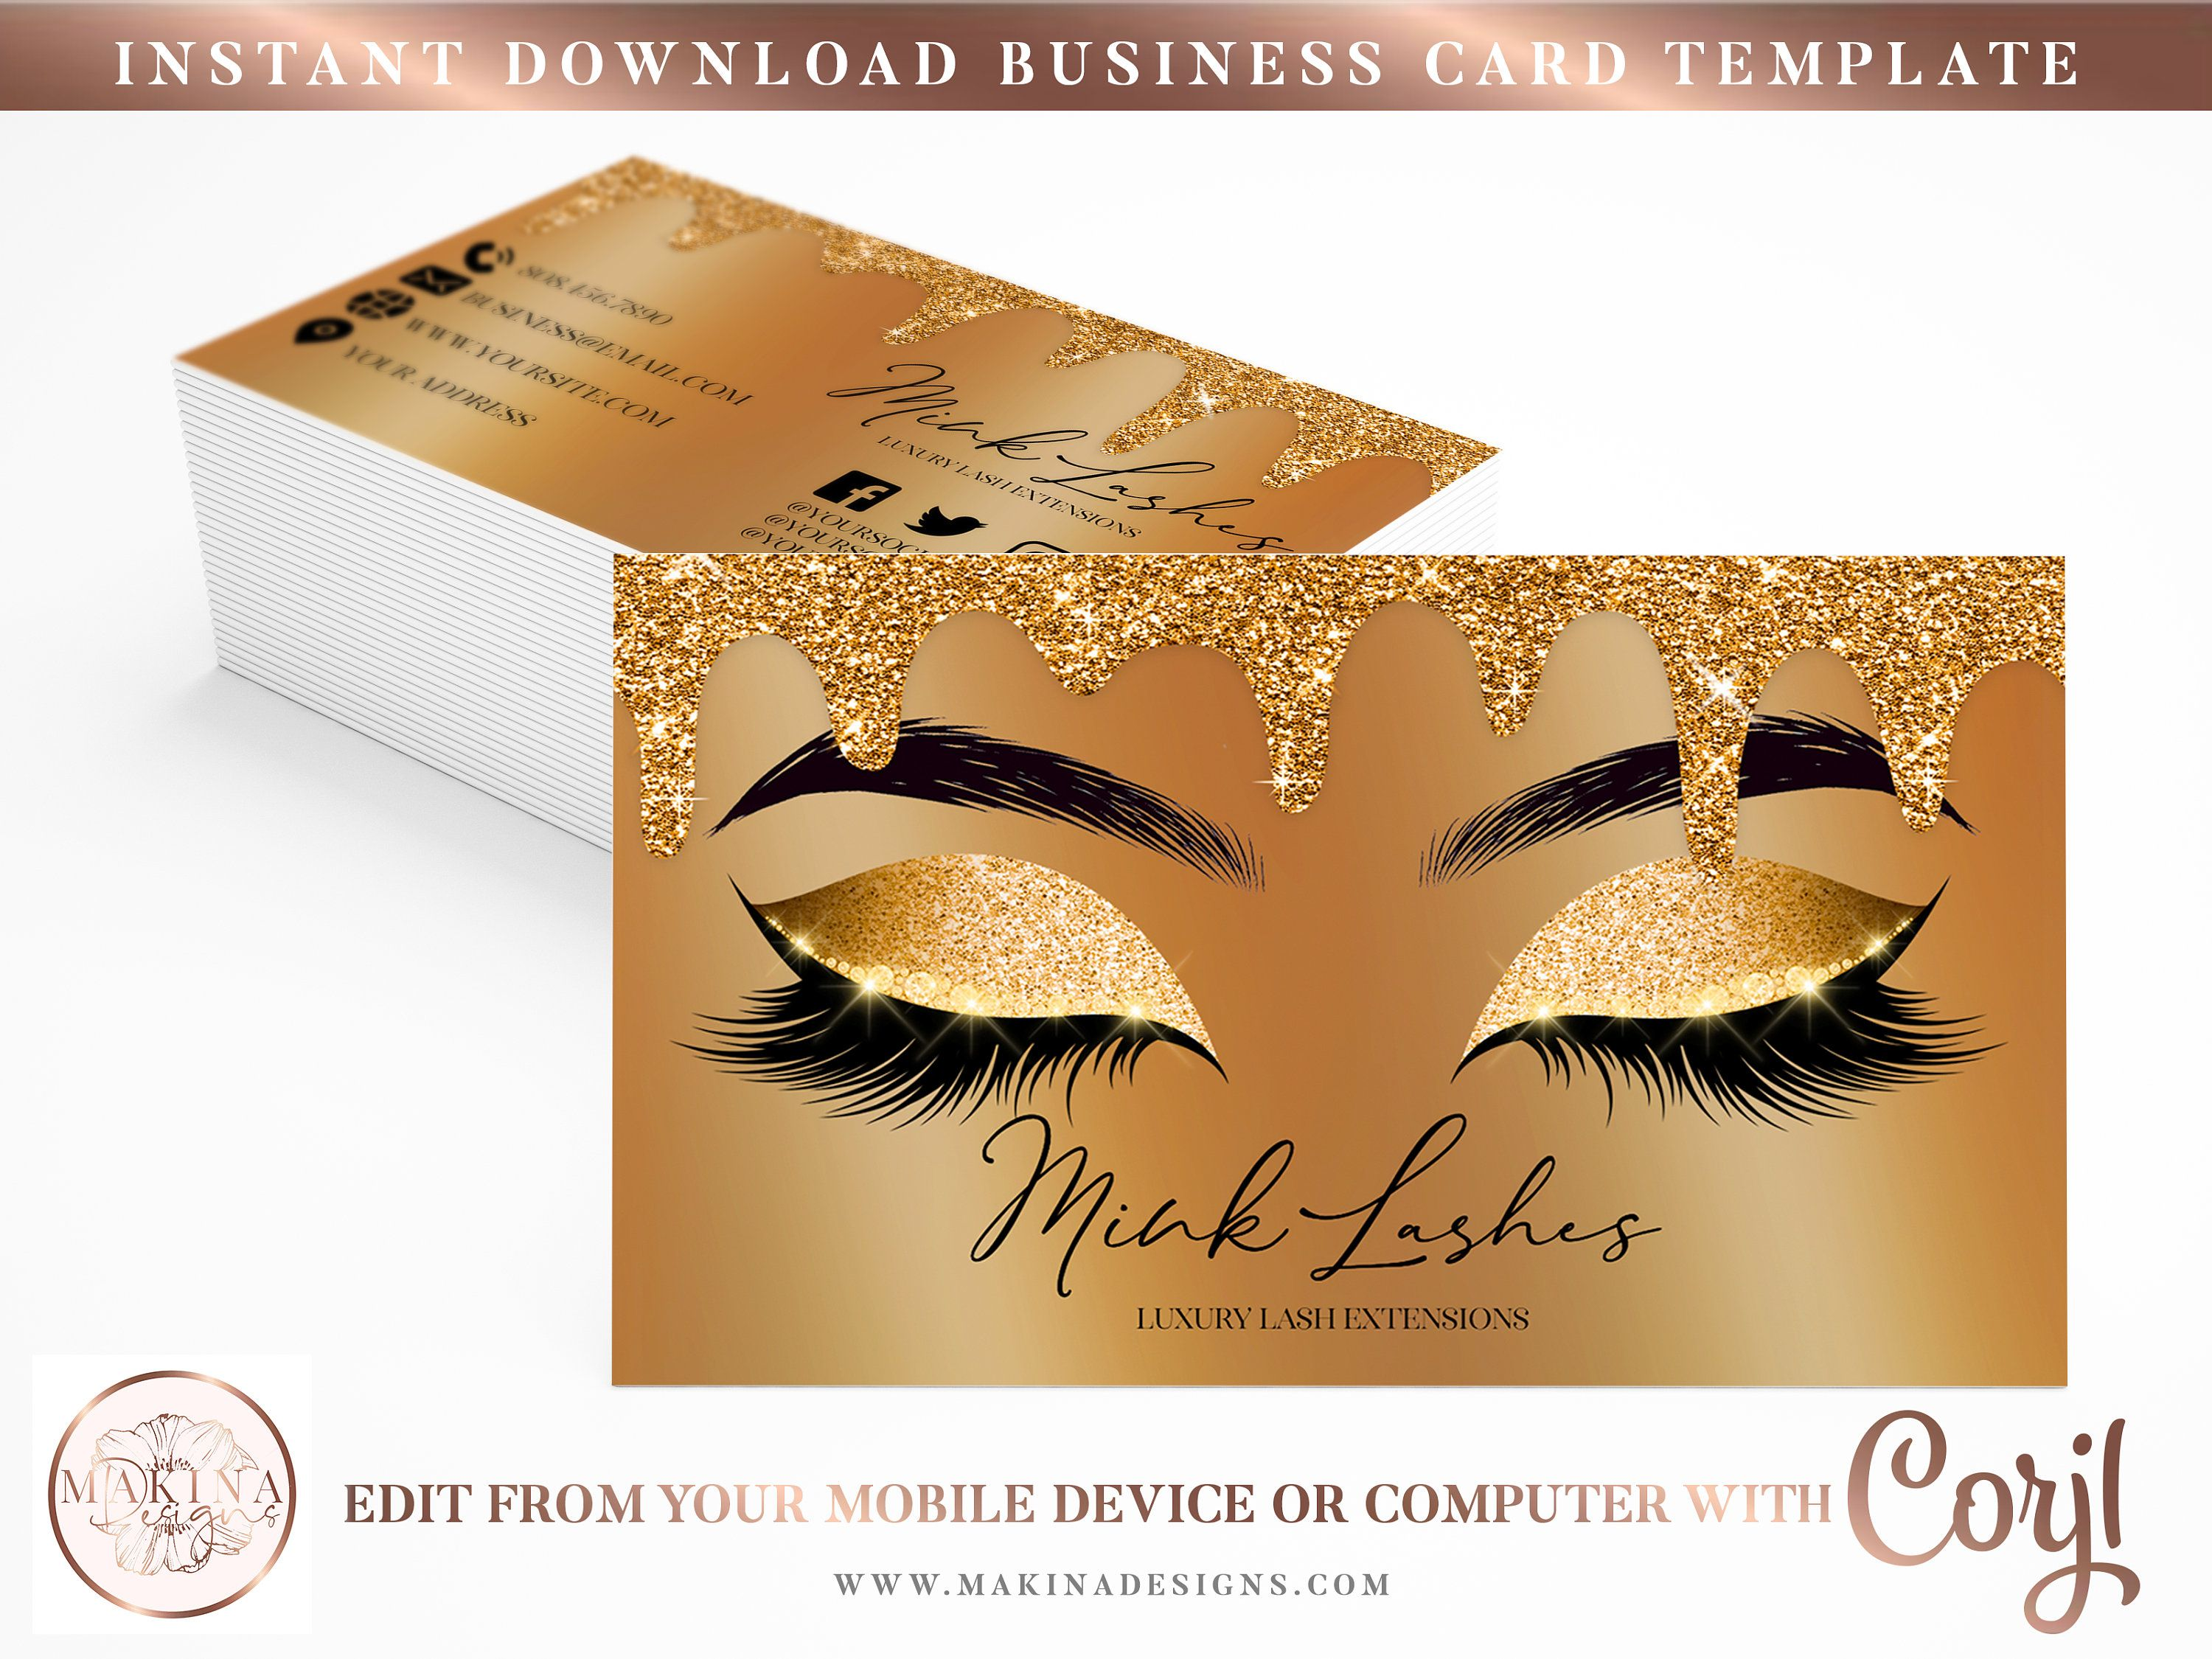 Business Card Template Business Card Card Design Logo Premade Logo Logo Template Lash Technician Beauty Card Design Card Template Business Card Template